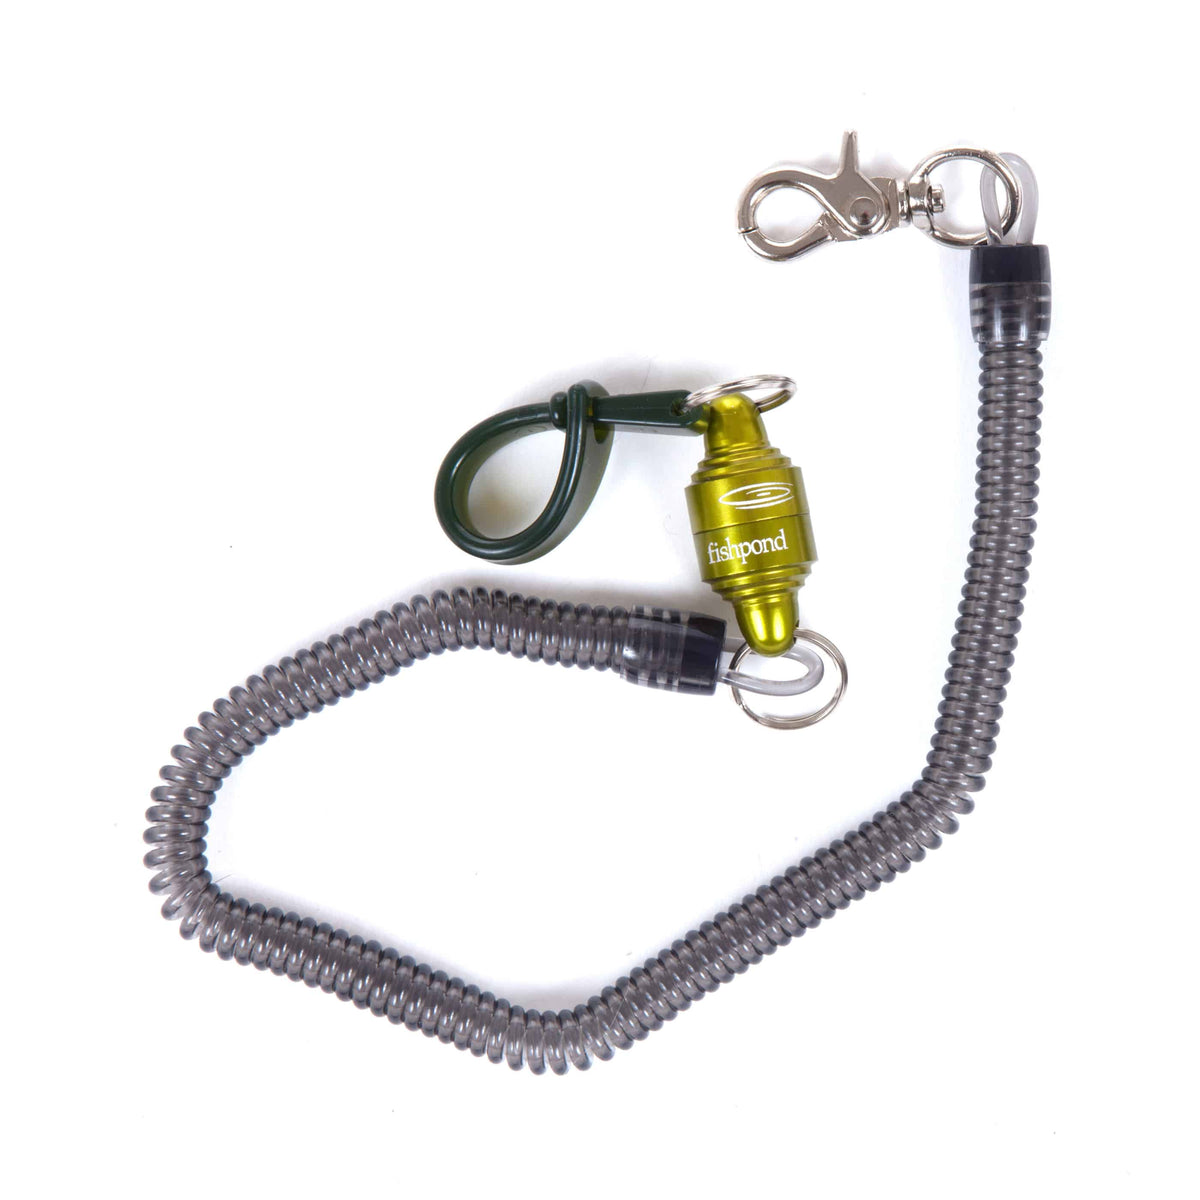 Fishpond Confluence Fly Fishing Magnetic Net Release